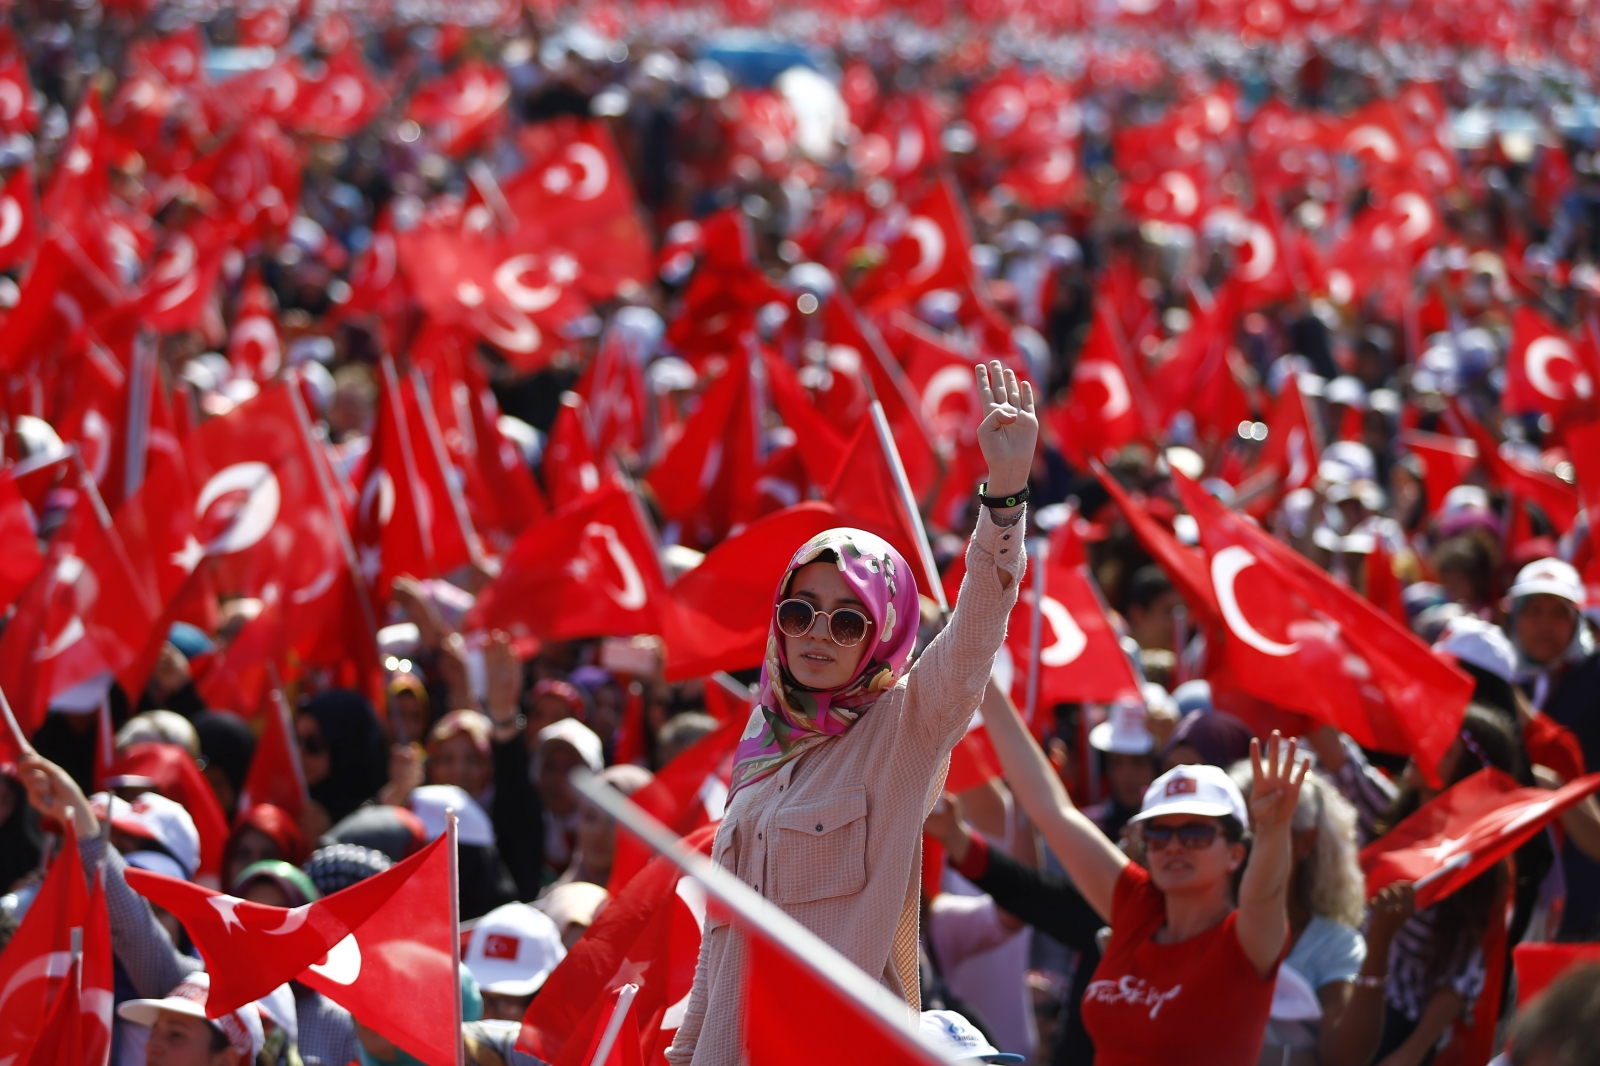 Istanbul Turkey Erdogan rally August 2016